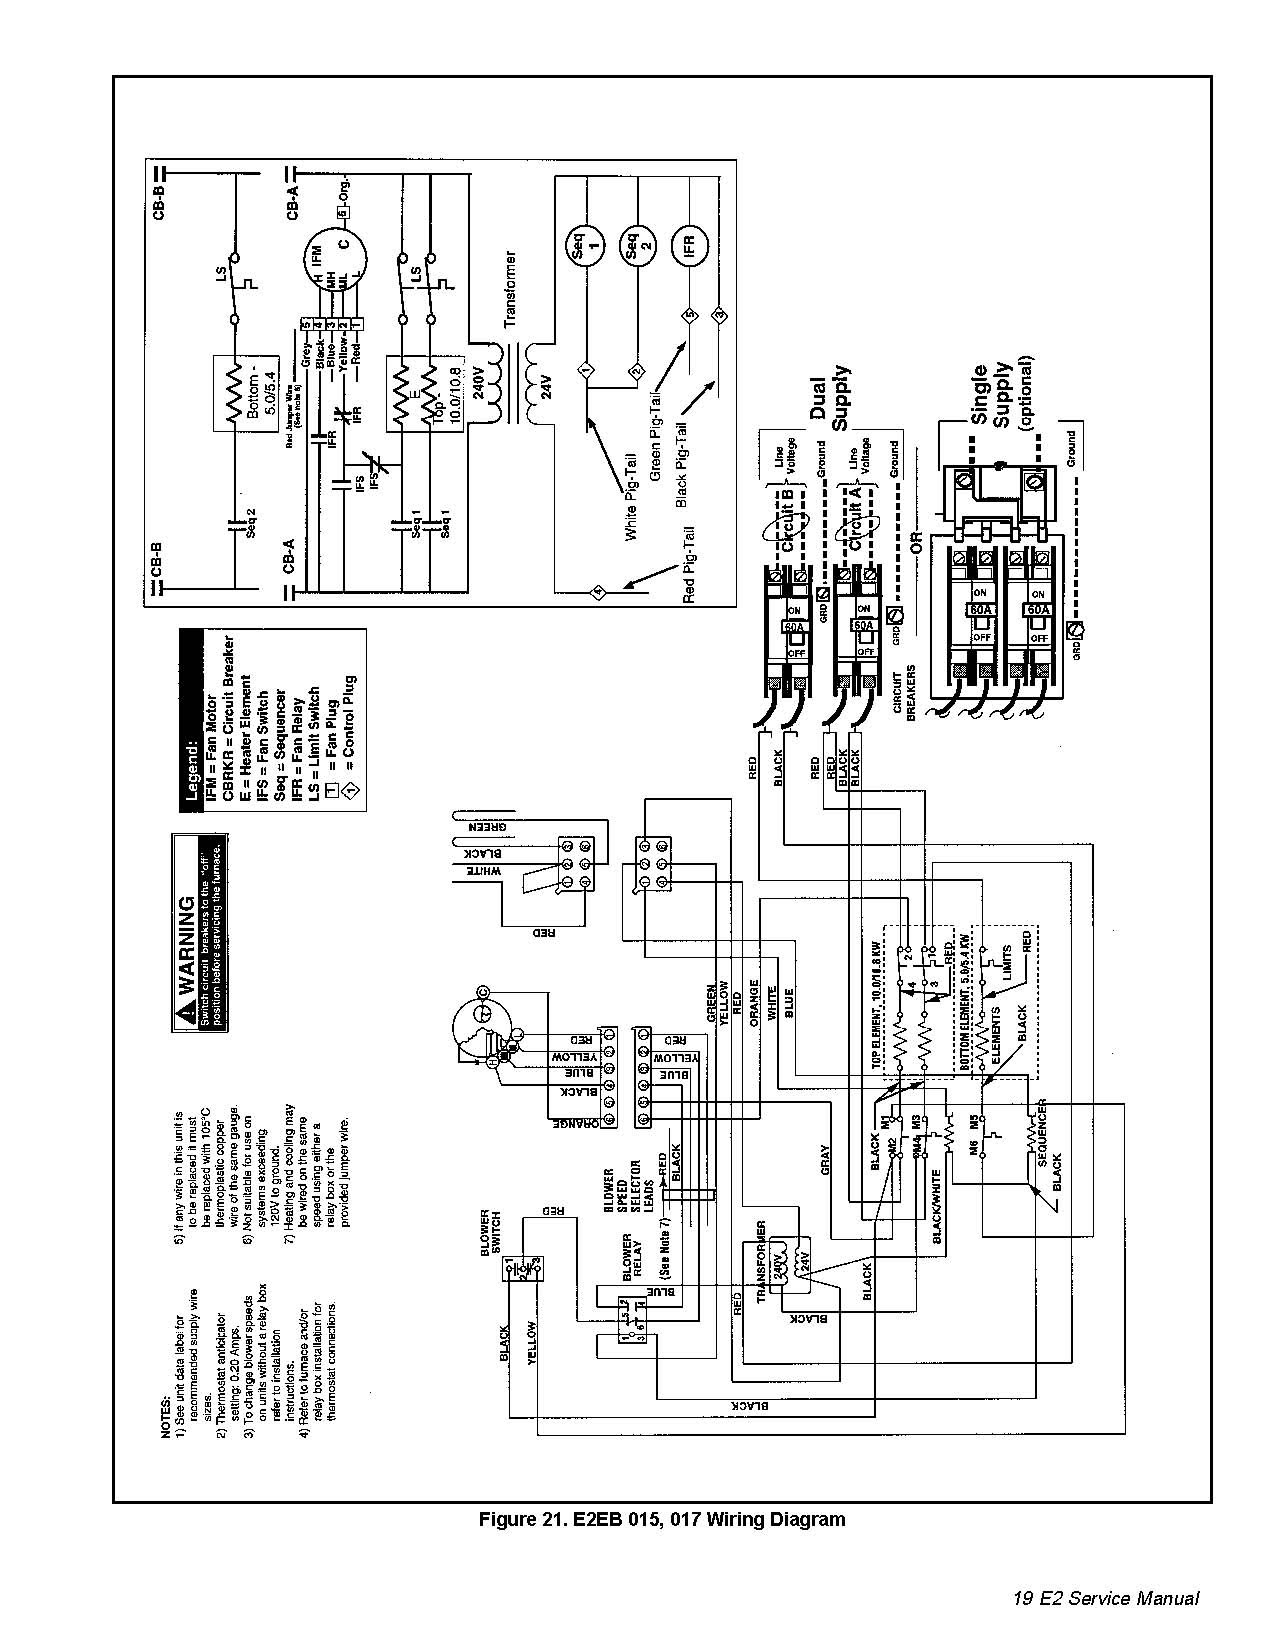 Wood Furnace Wiring Diagram Libraries Hardy Parts Free Download Schematic Miller Third Levelgallery Of Electric E1eb